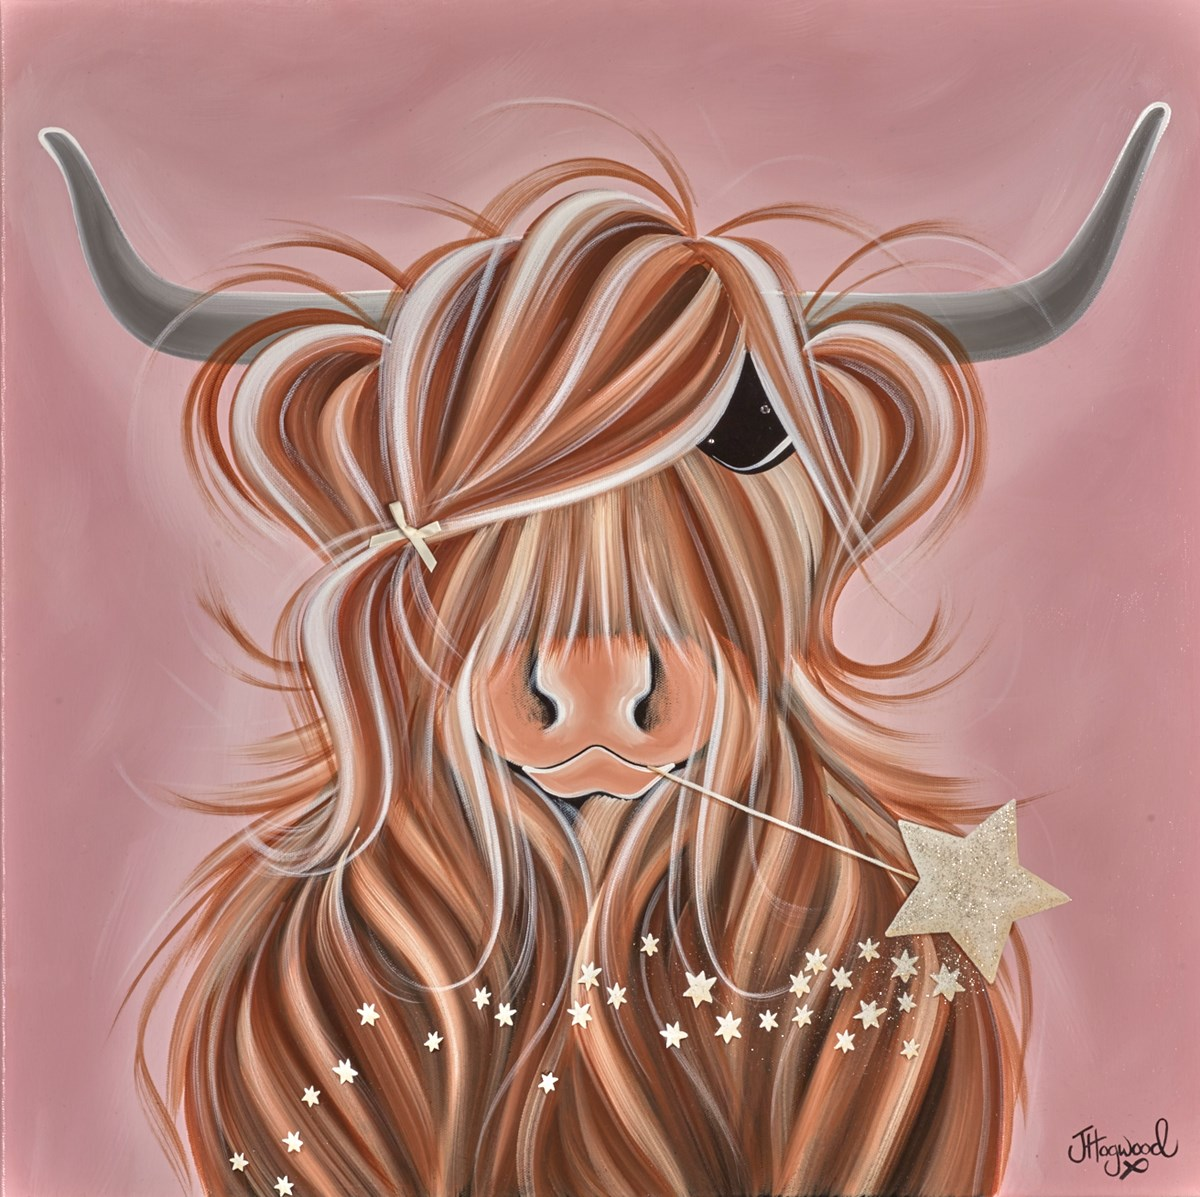 Making a Wish II by jennifer hogwood -  sized 24x24 inches. Available from Whitewall Galleries